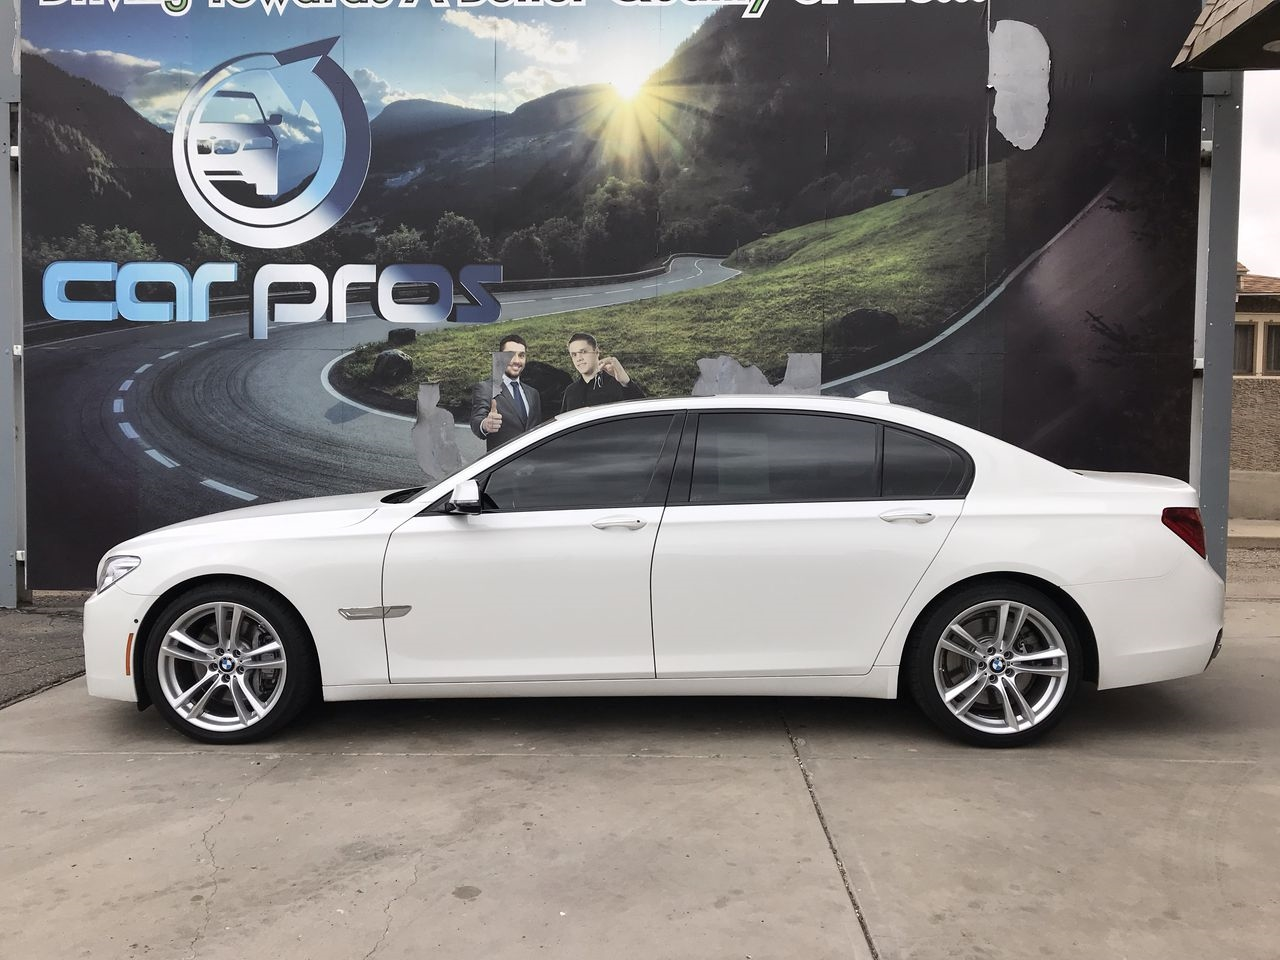 2014 BMW 7 Series 4dr Sdn ALPINA B7 LWB xDrive AWD